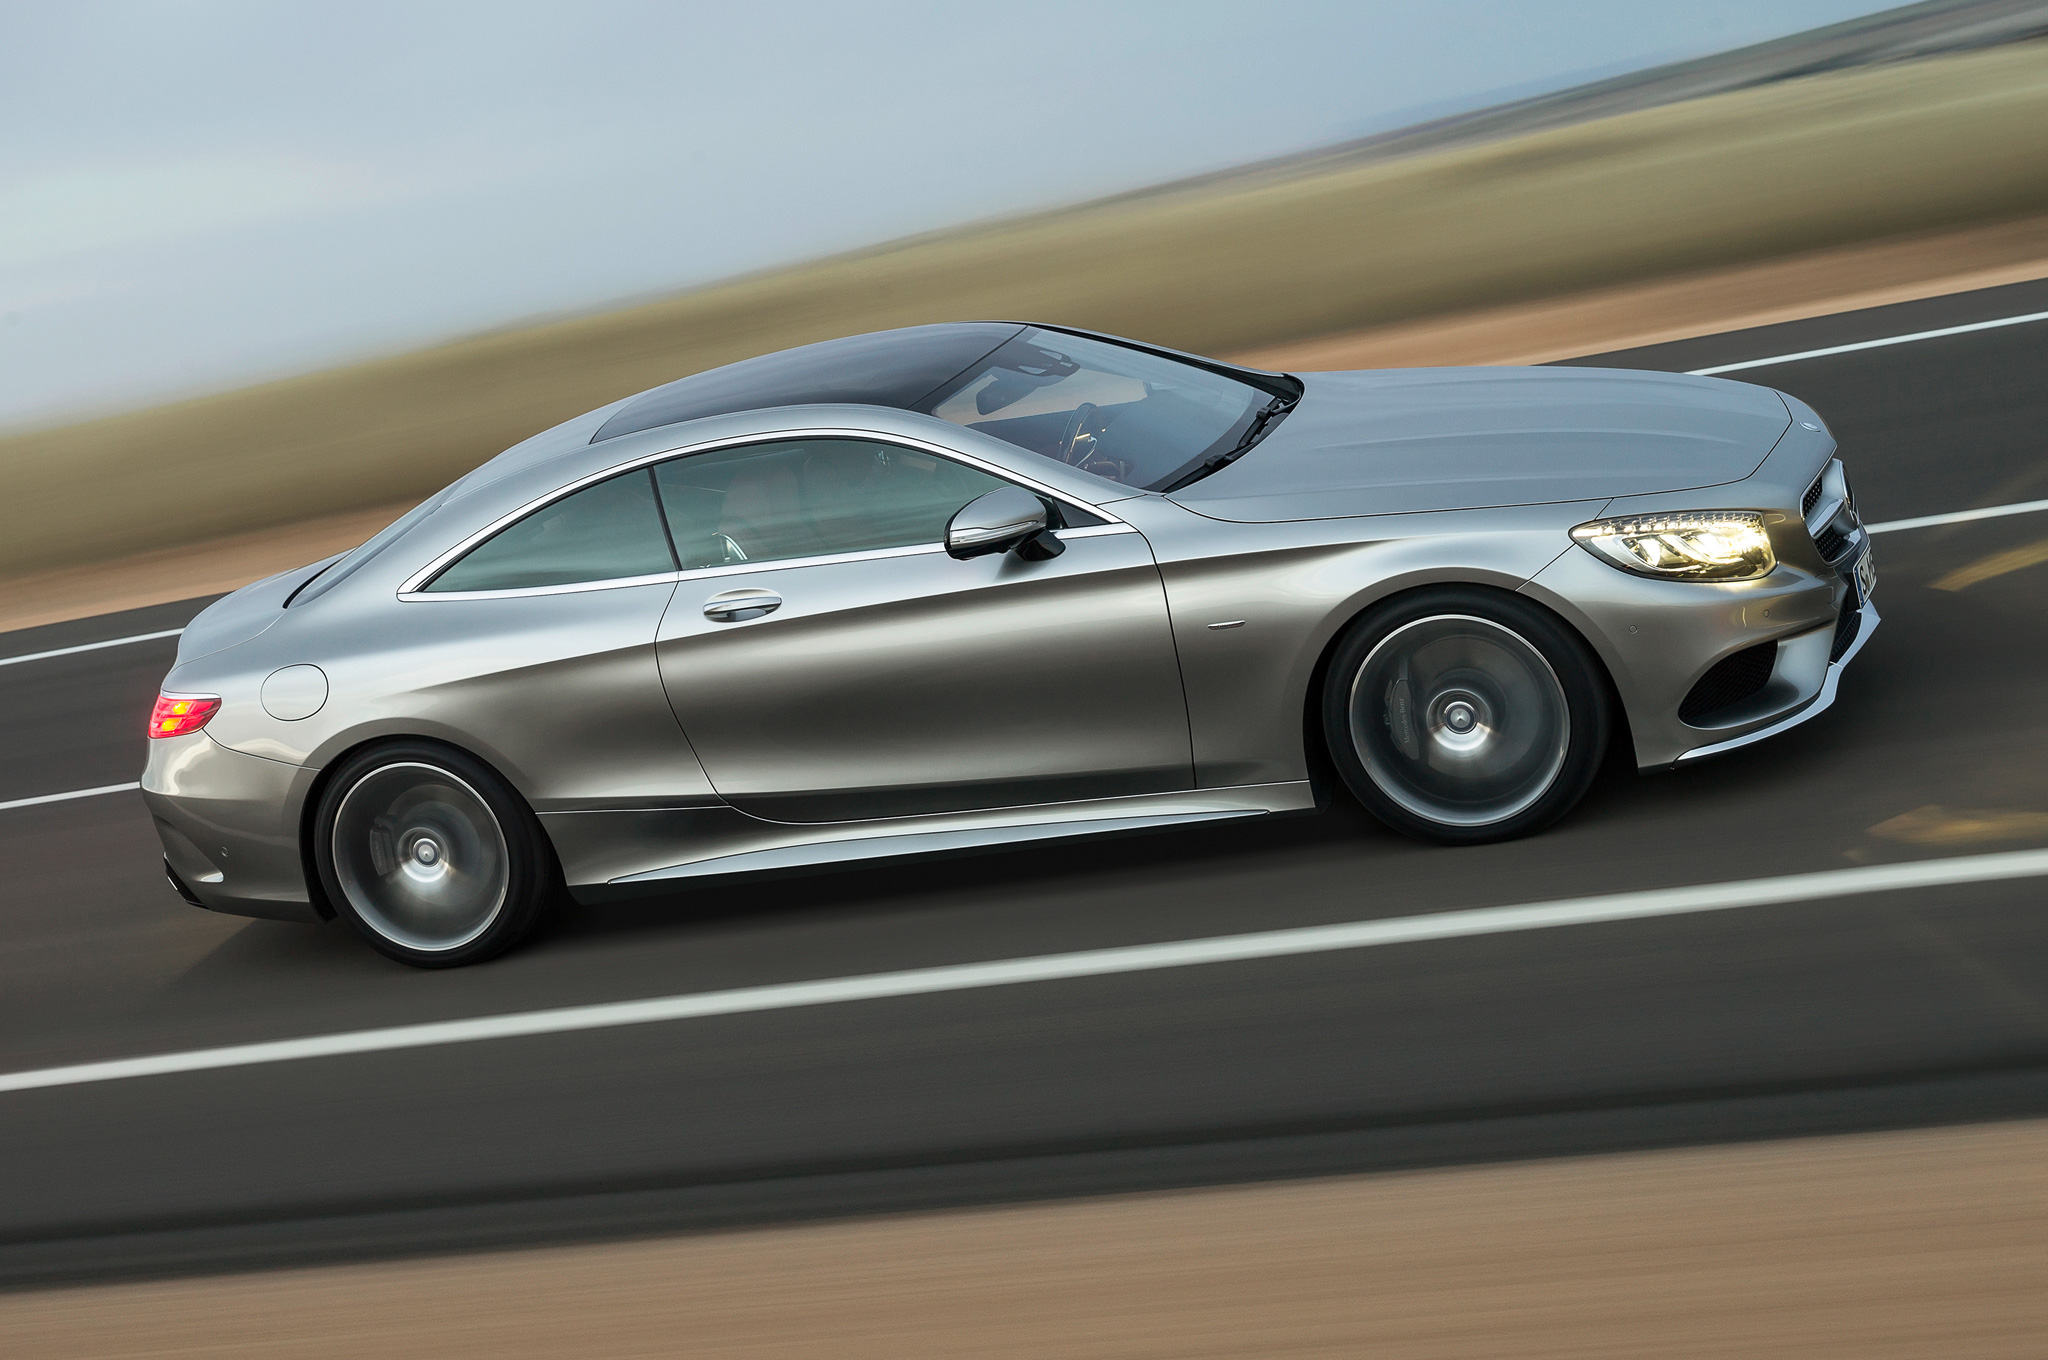 A Review Of 2015 Mercedes Benz S Class Image 2